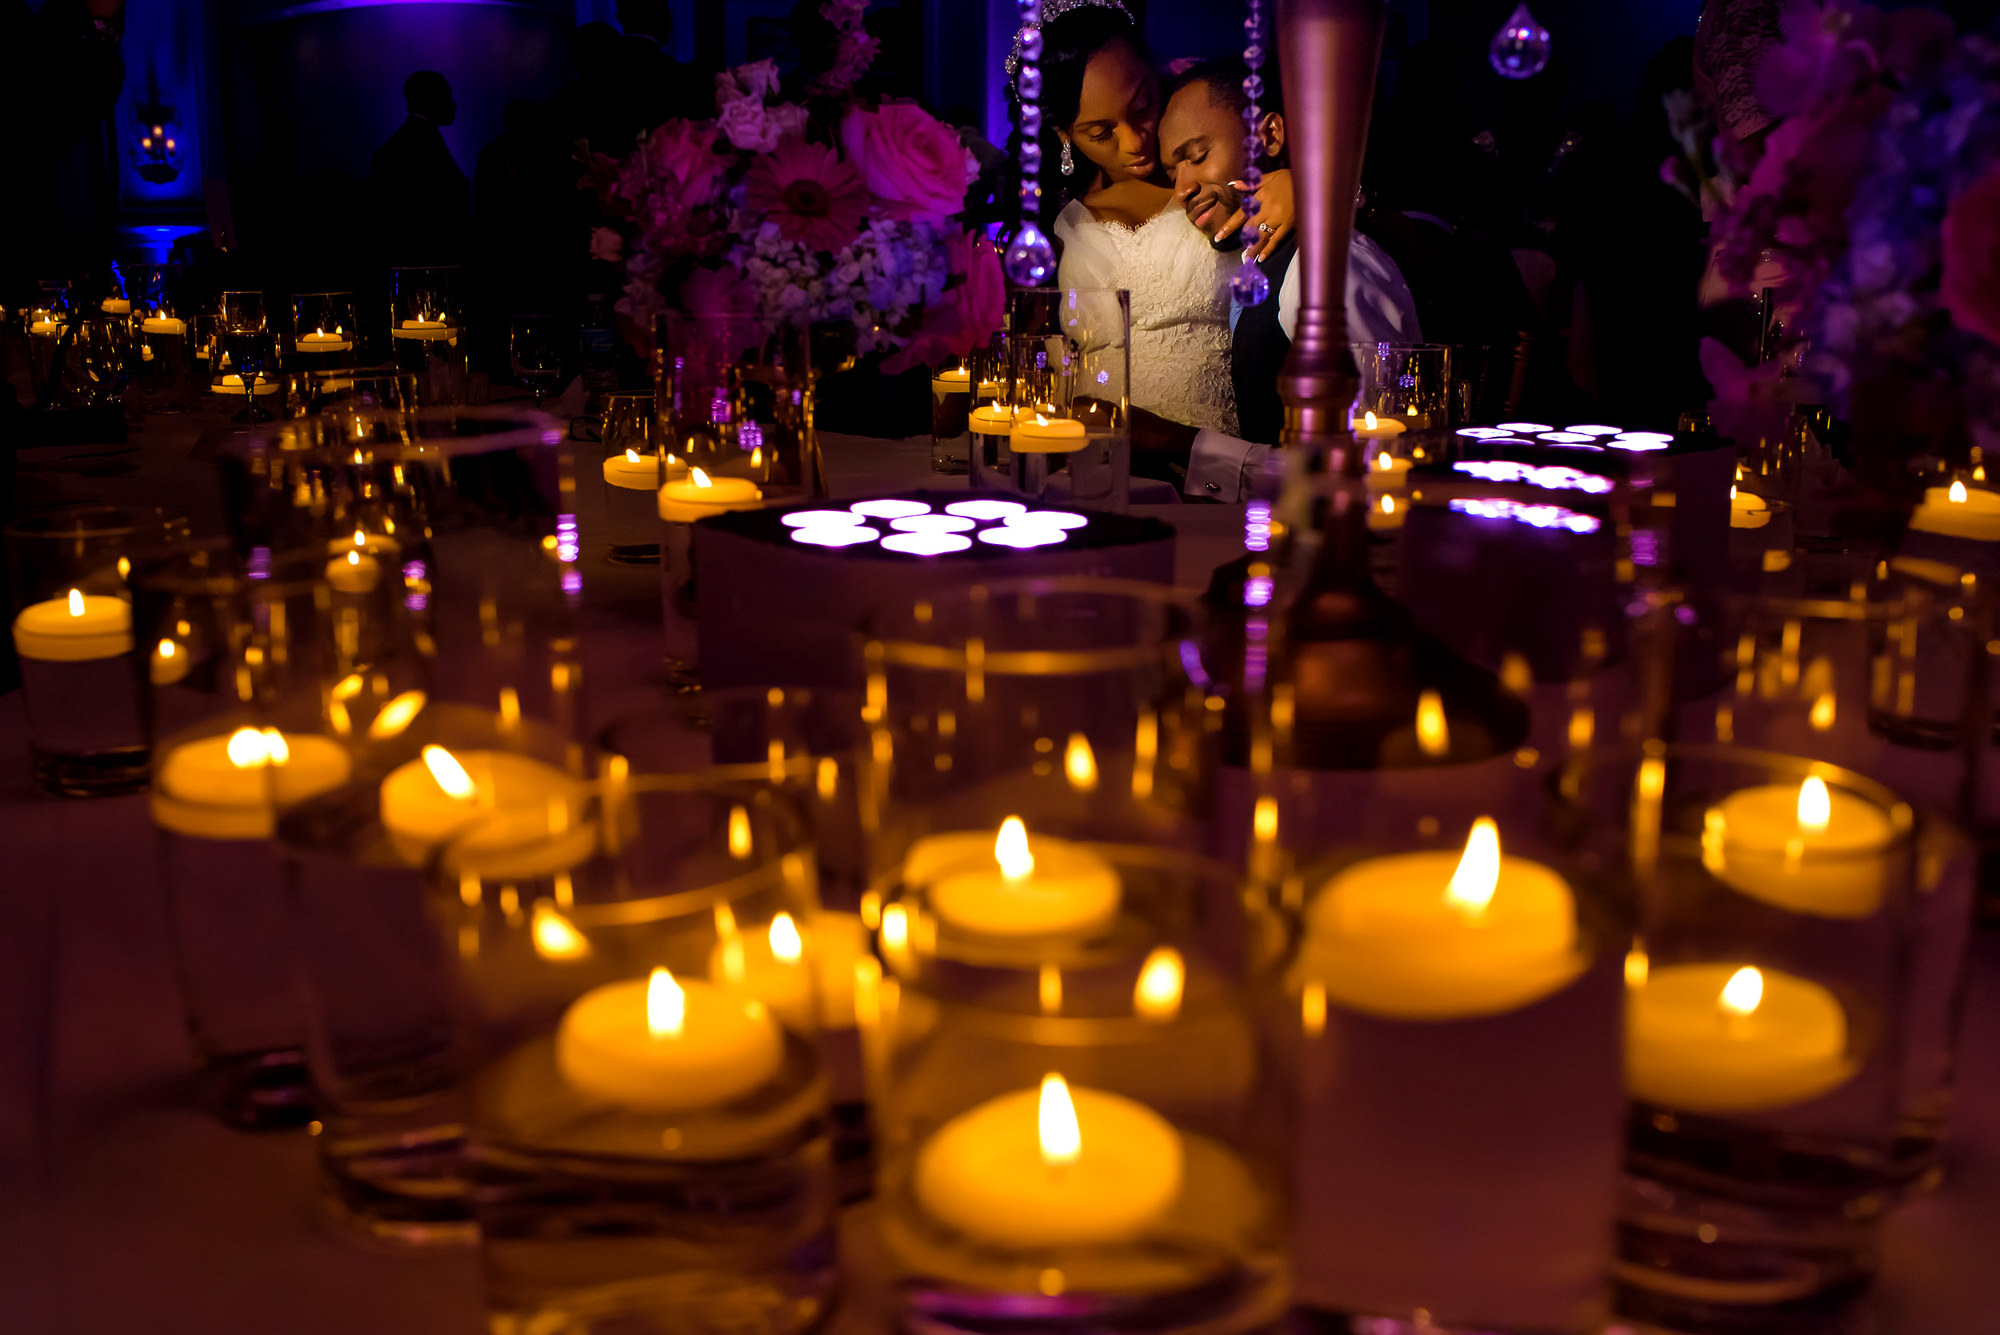 Couple caressing at candlelight table - photo by Jide Alakija